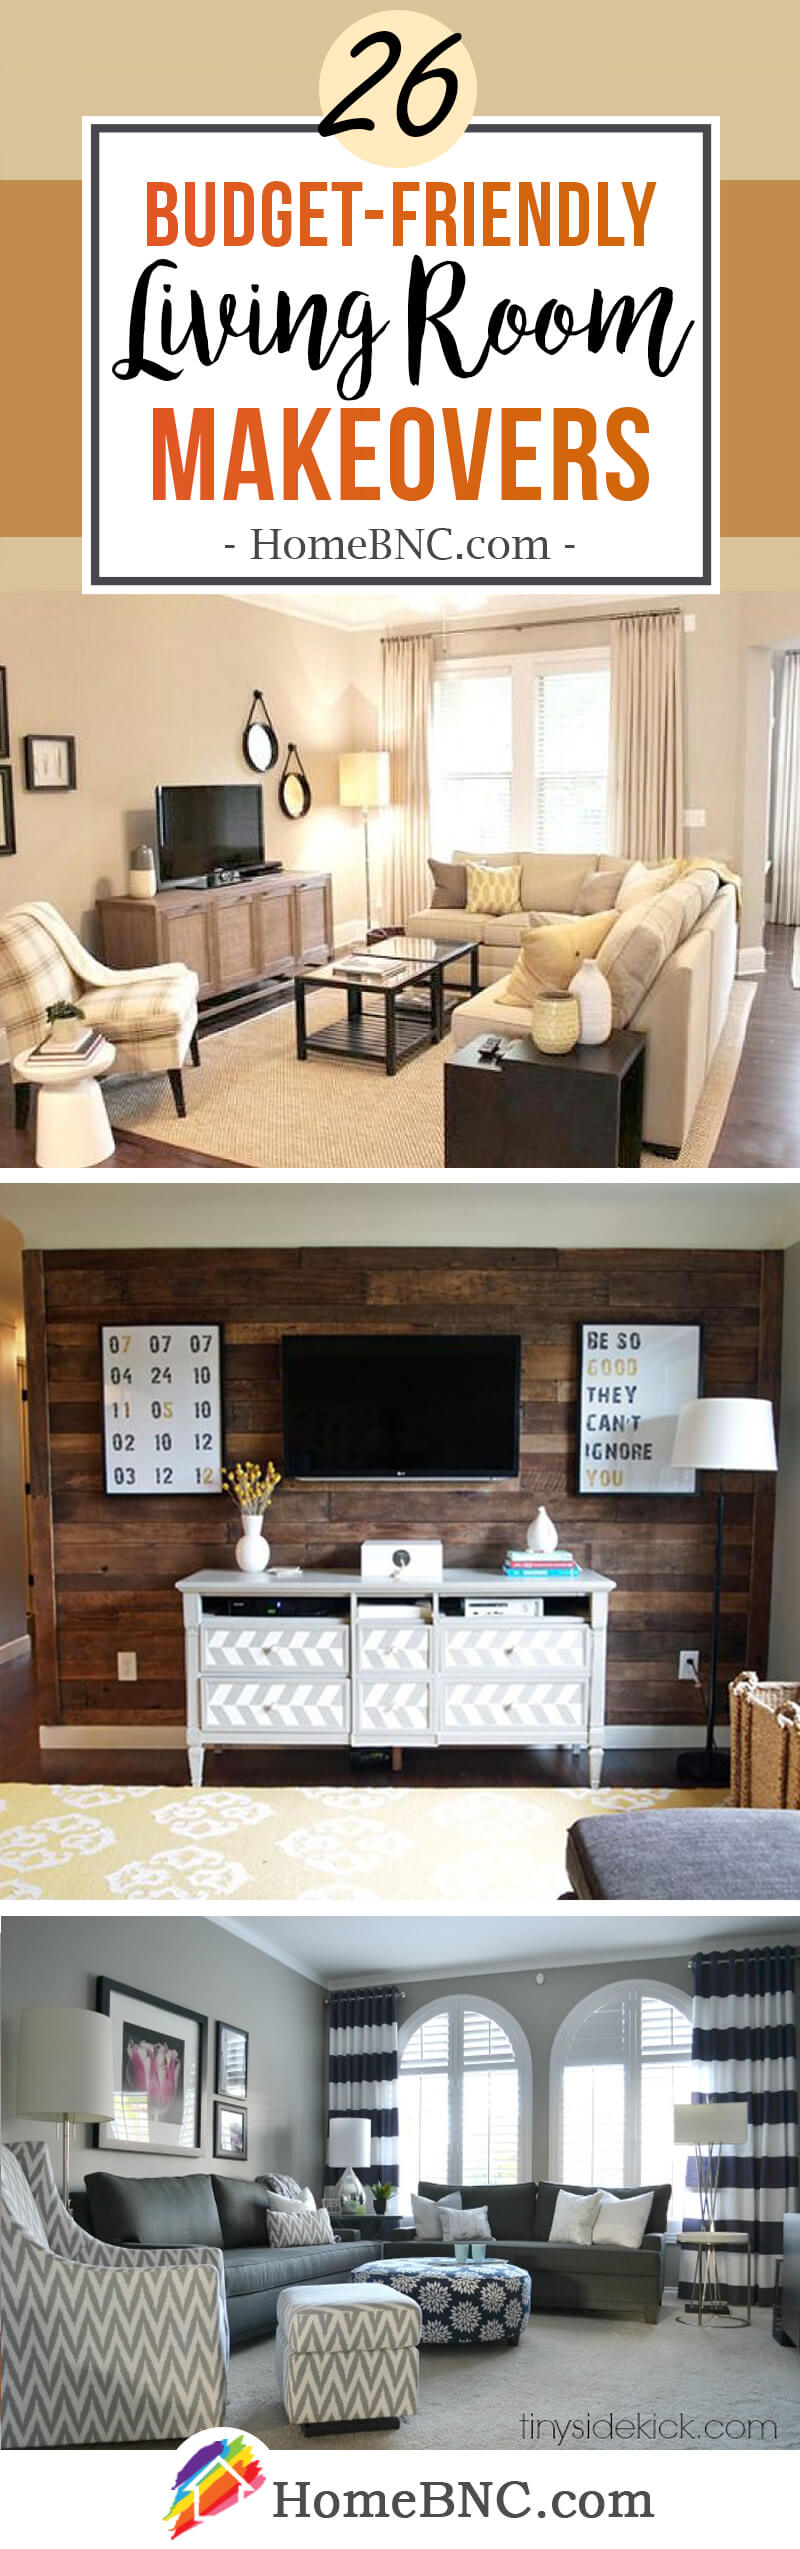 Budget Friendly Living Room Makeover Decor Ideas